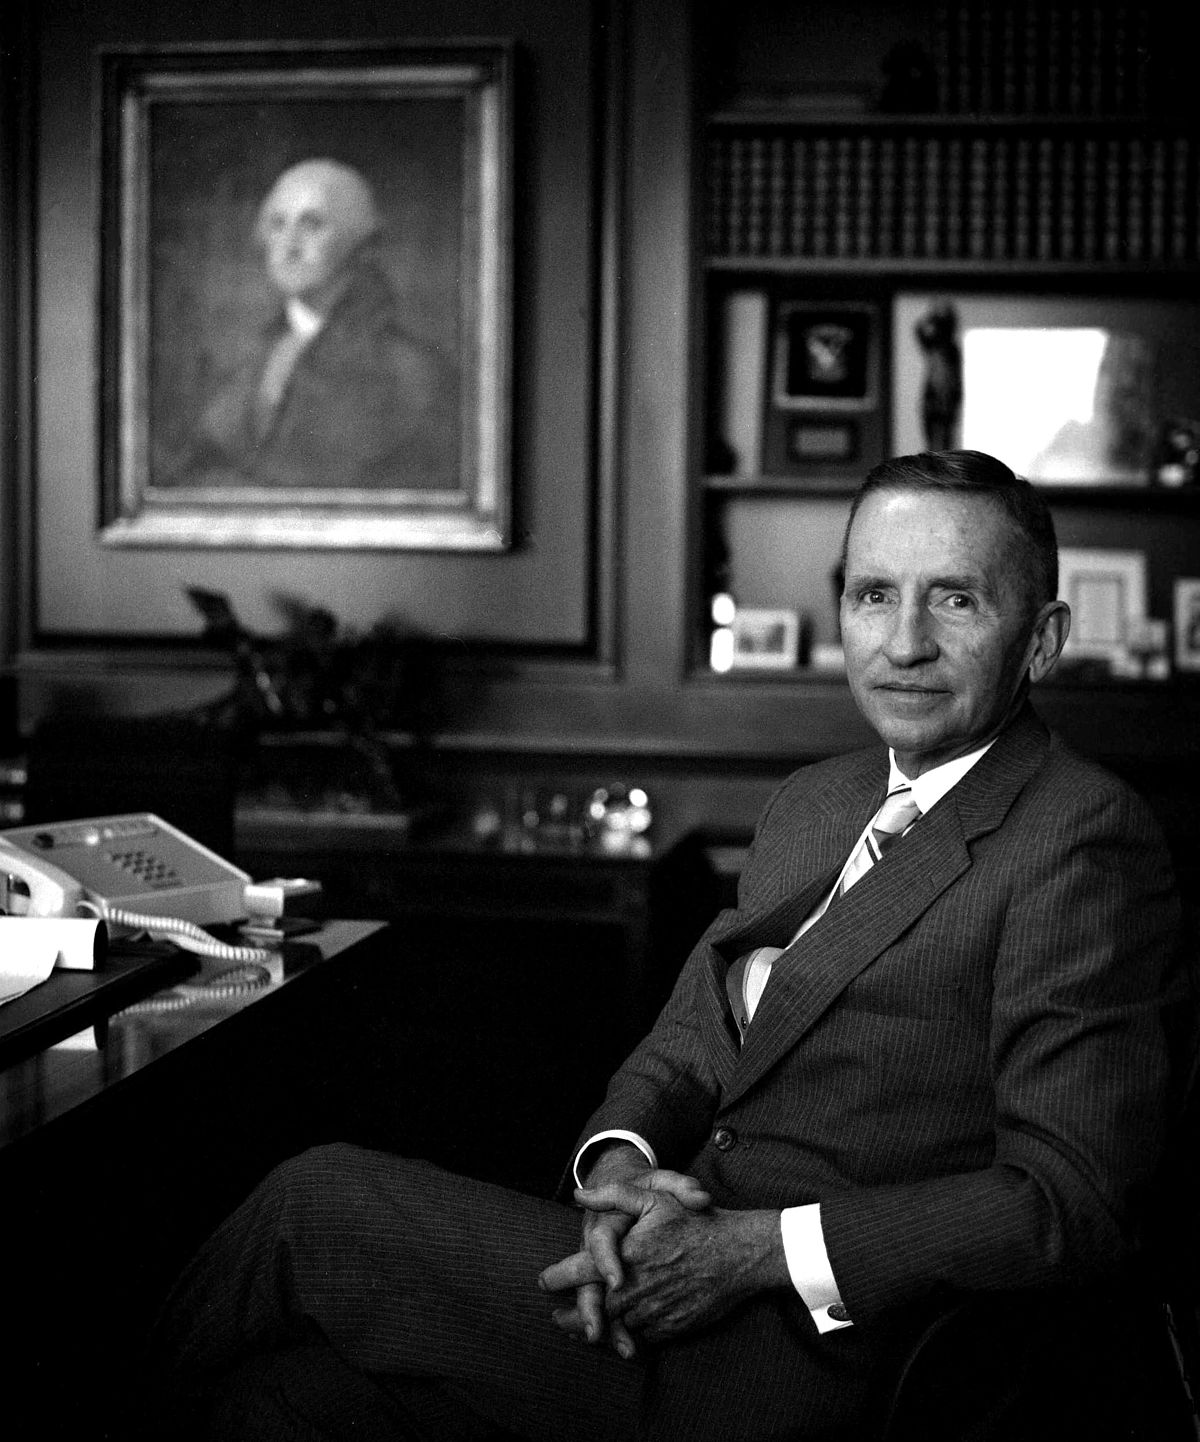 ross perot - photo #3